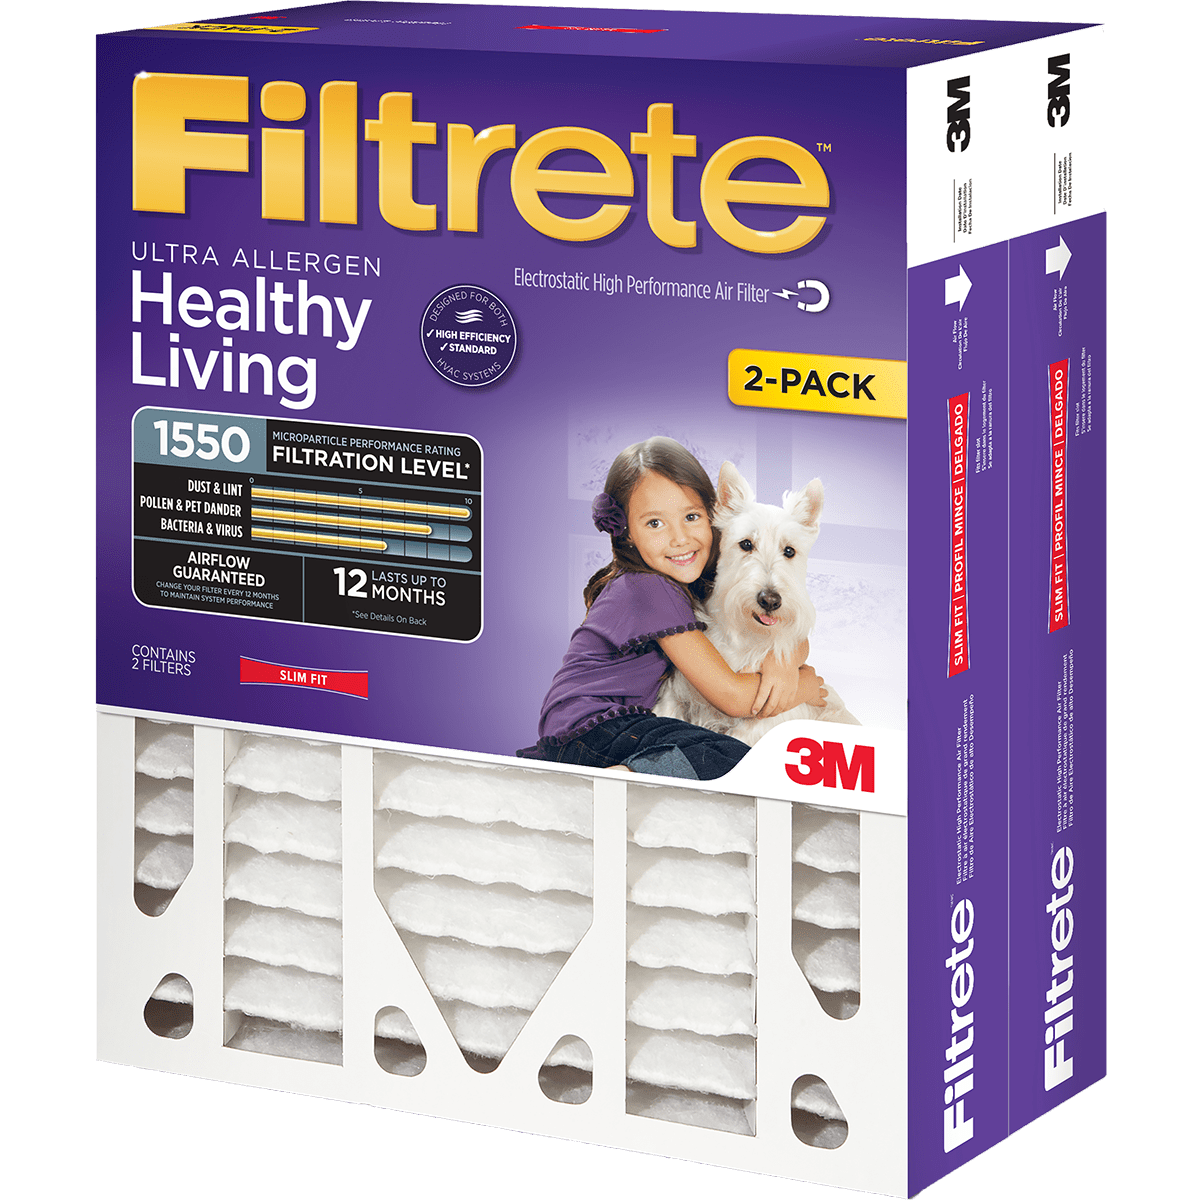 Image of 3M Filtrete Healthy Living 1550 MPR 4-Inch Ultra Allergen Reduction Slim-Fit Filters